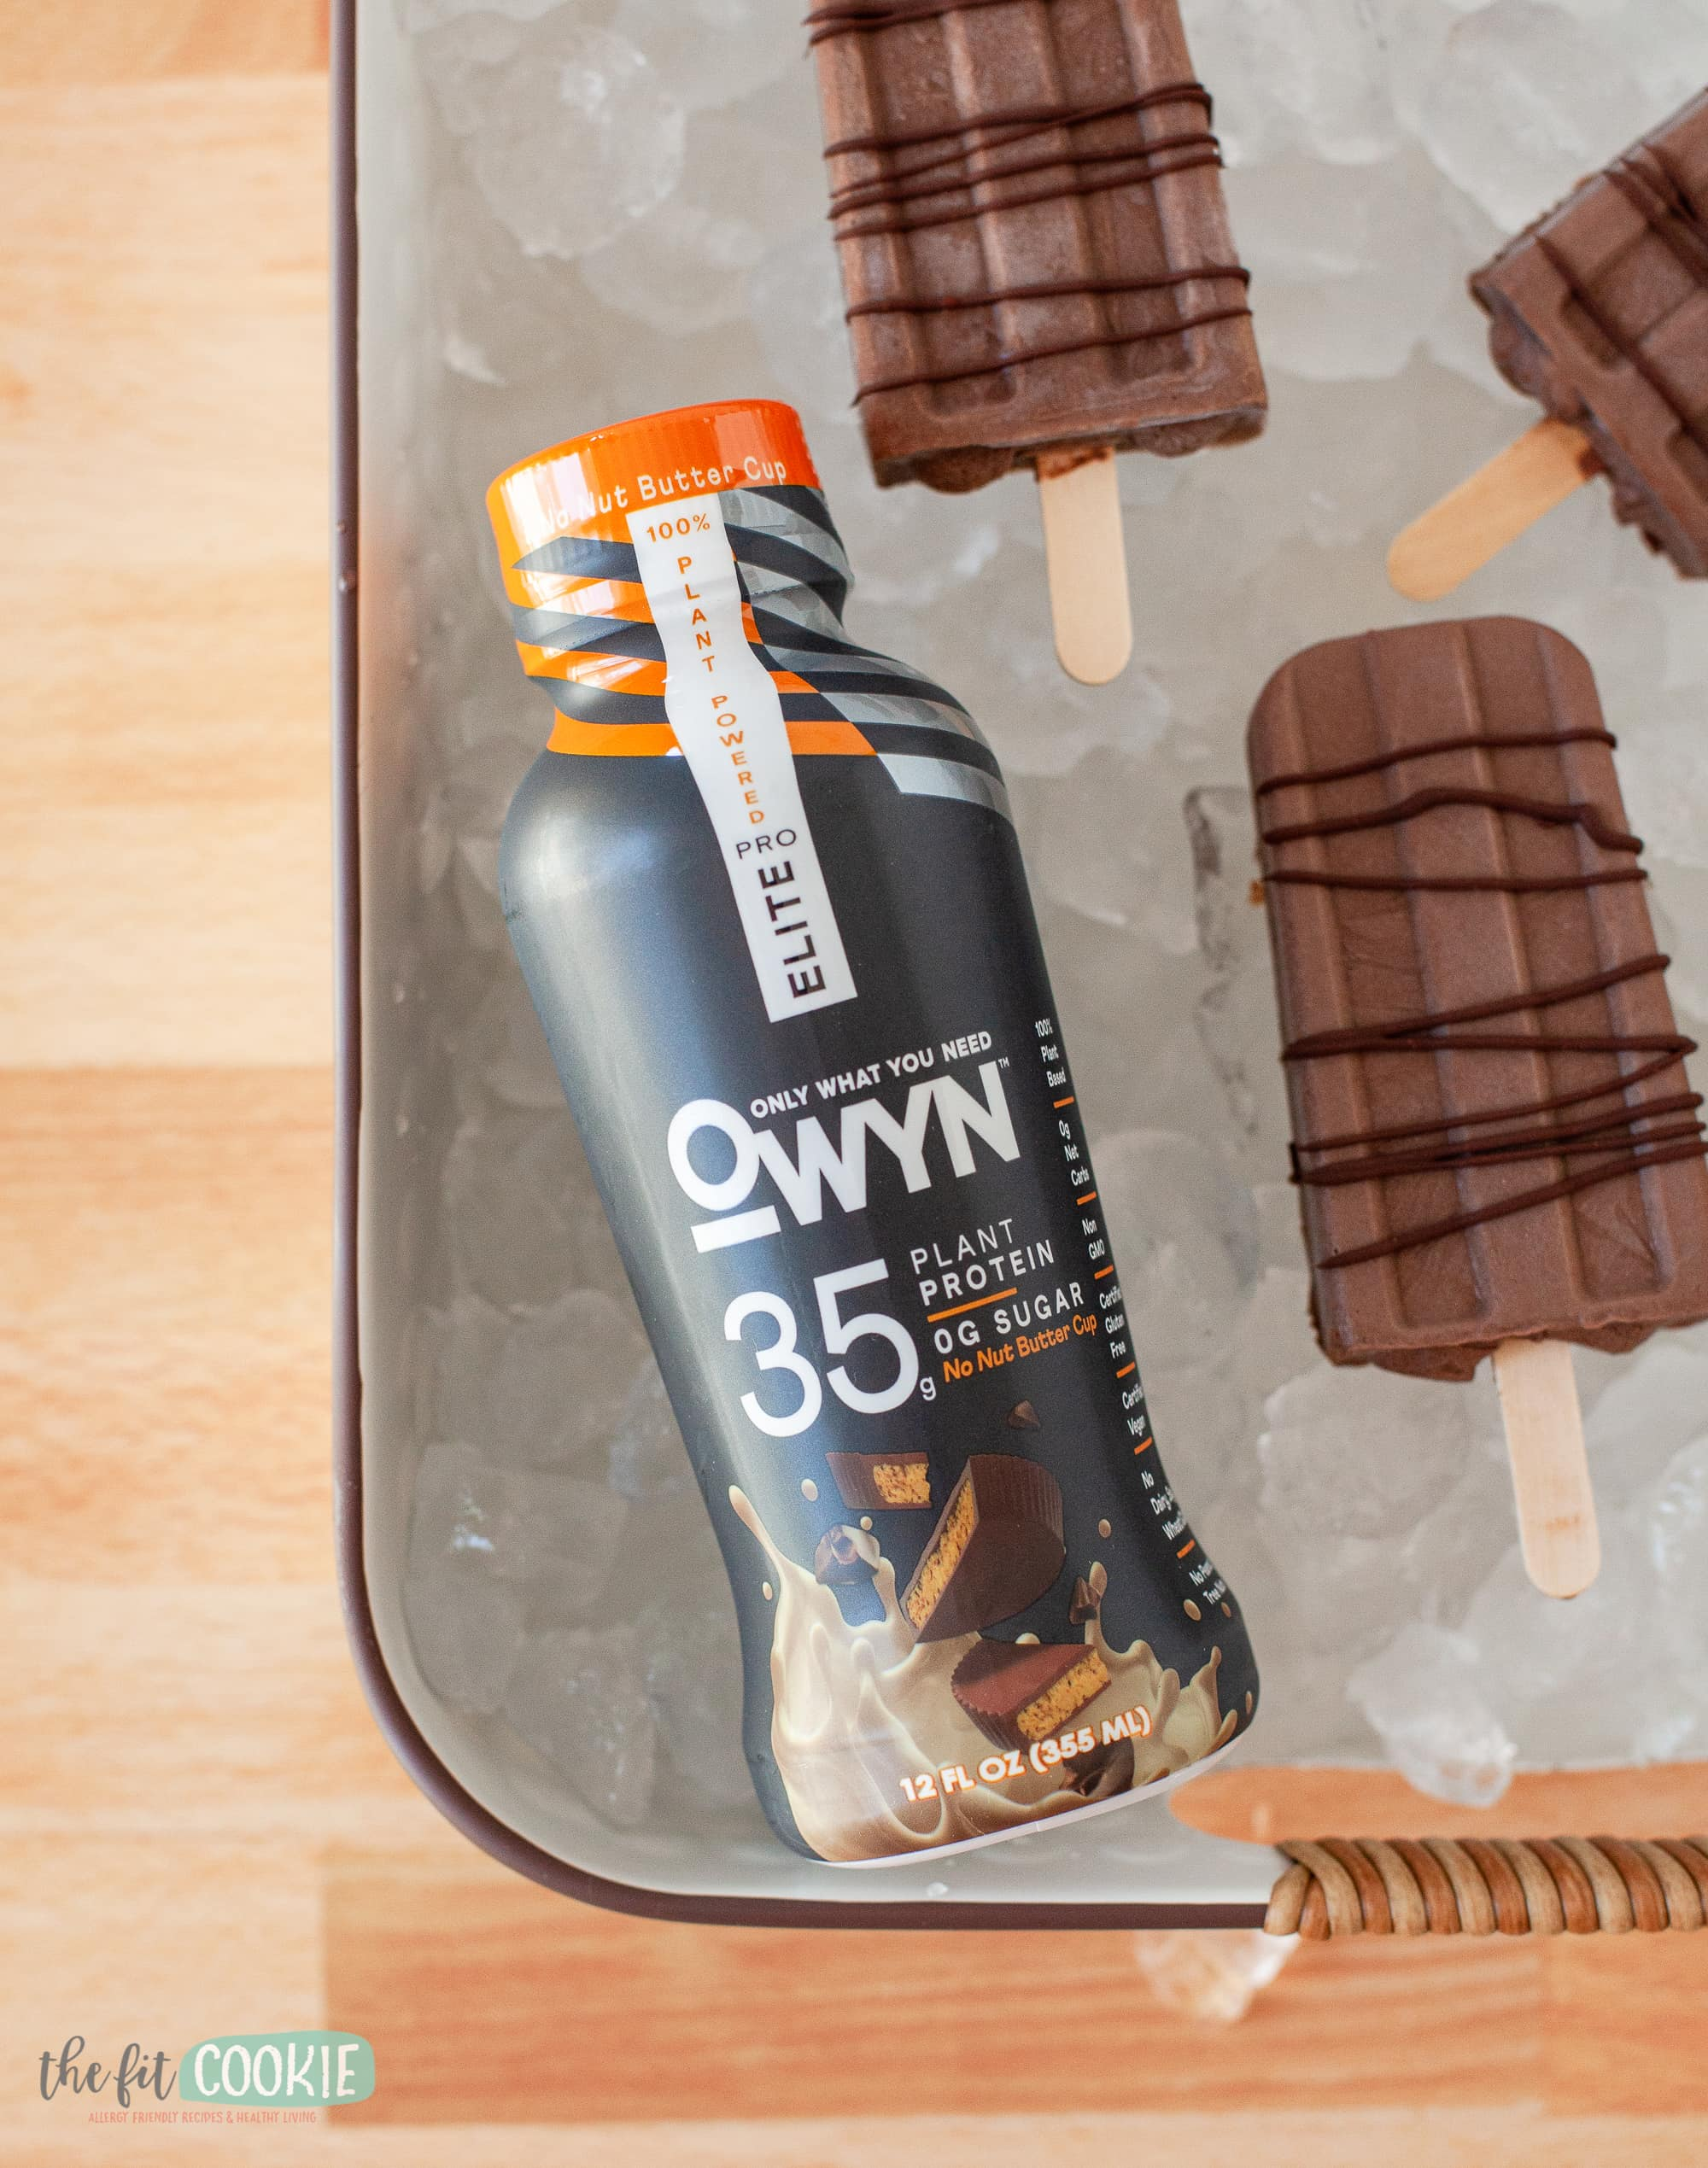 bottle of OWYN protein shake on ice with fudgesicles